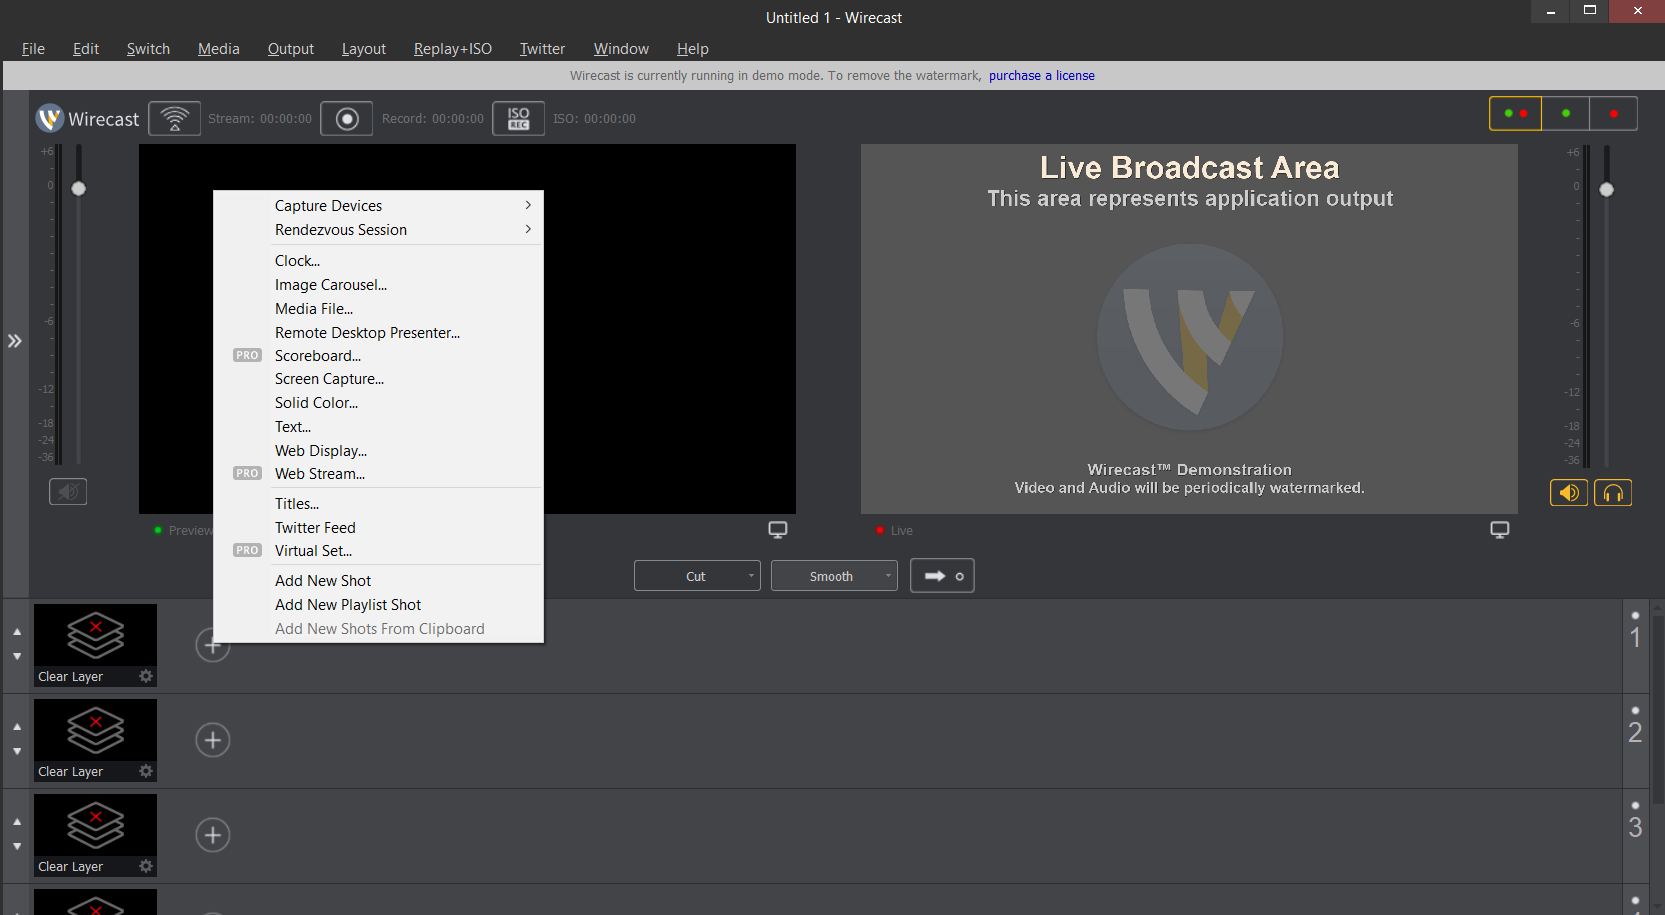 Adding a stream to Wirecast